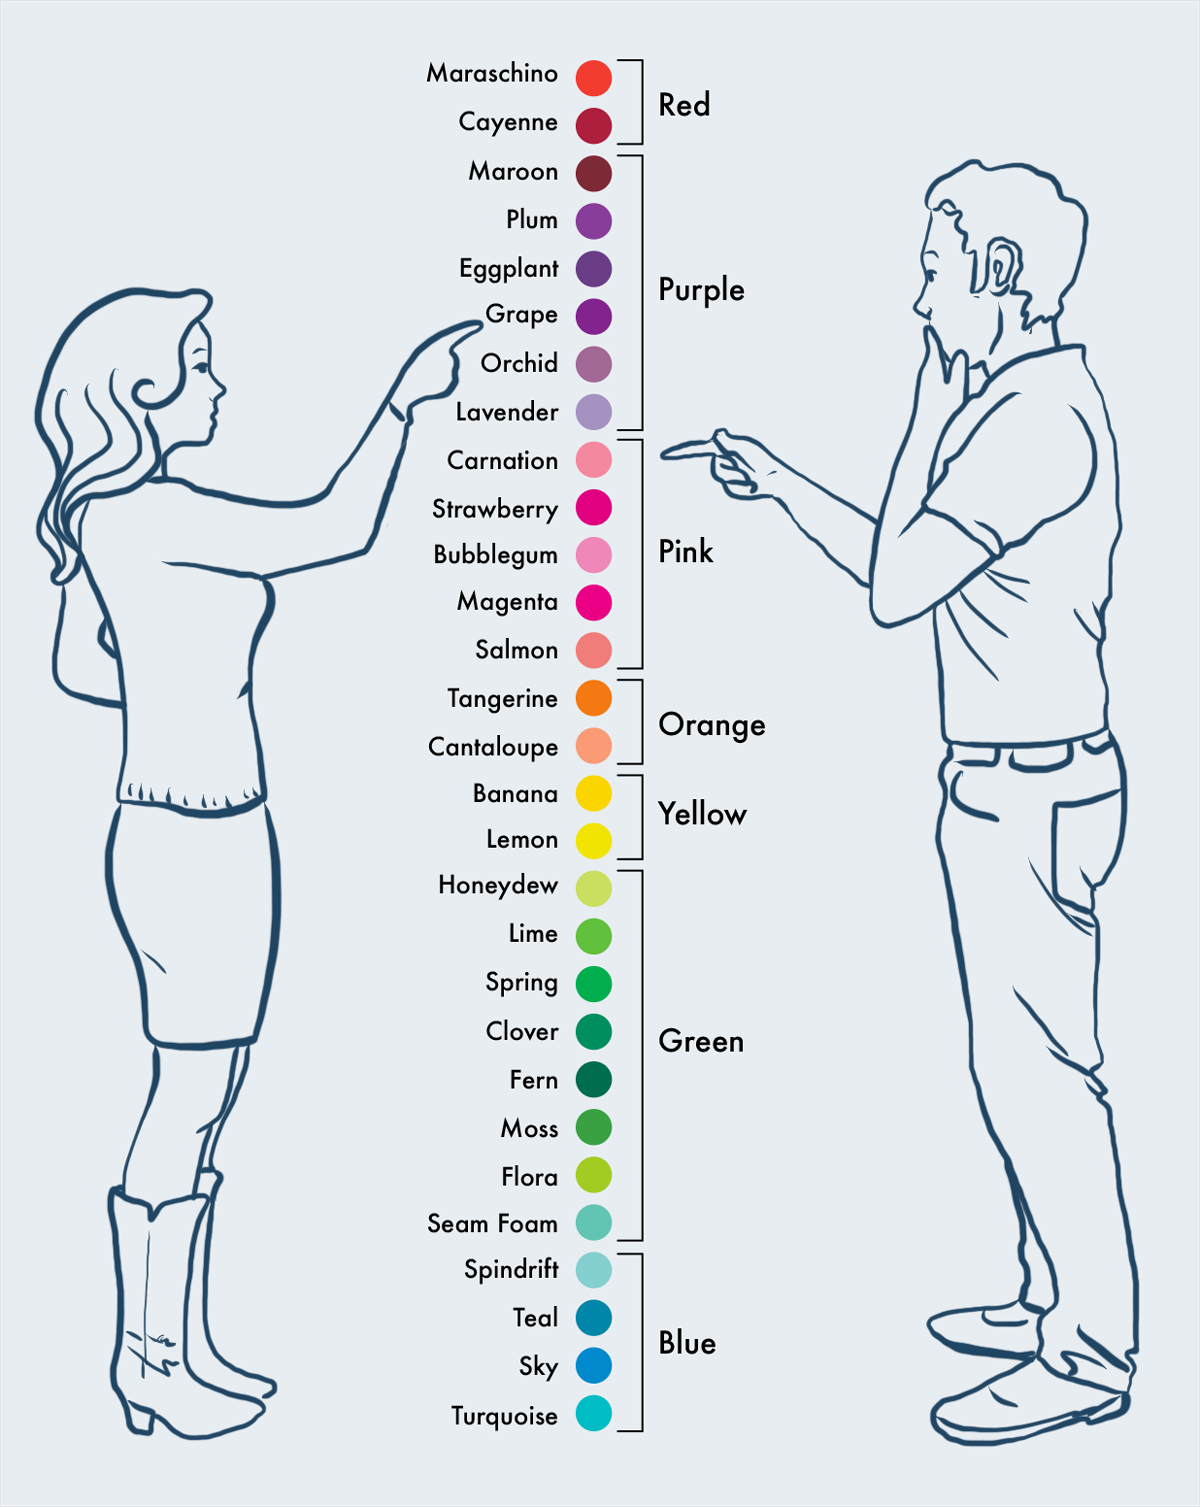 how-to-choose-the-right-color-scheme-for-your-infographic-how women and men see colors